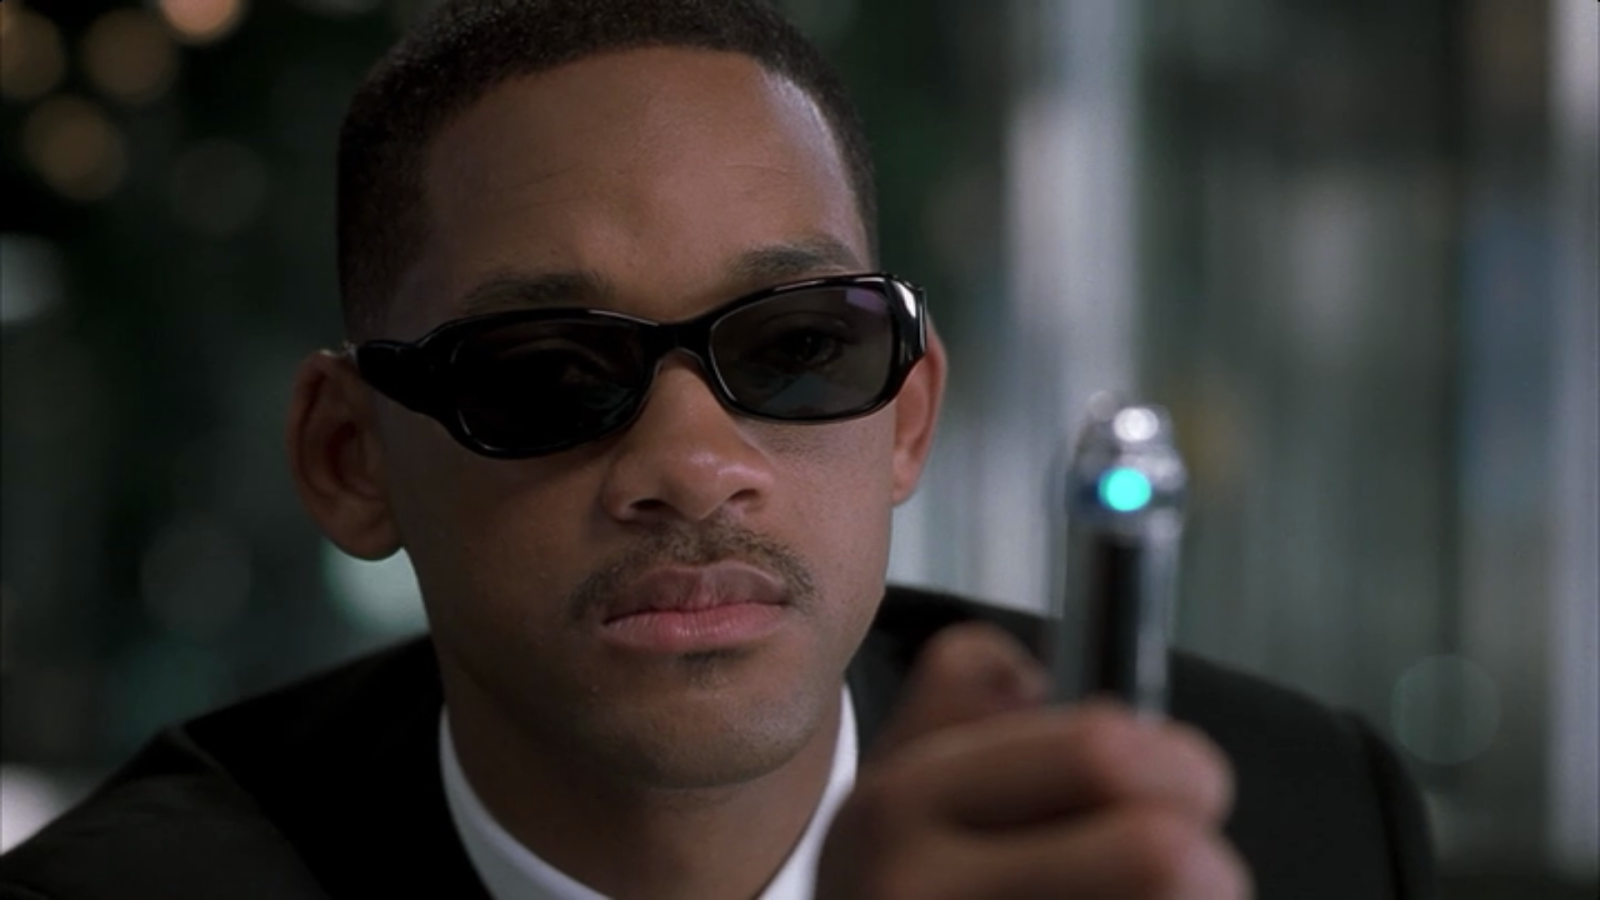 movie men in black ii adventures of me men in black ii imdb com middot men in black ii rottentomatoes com